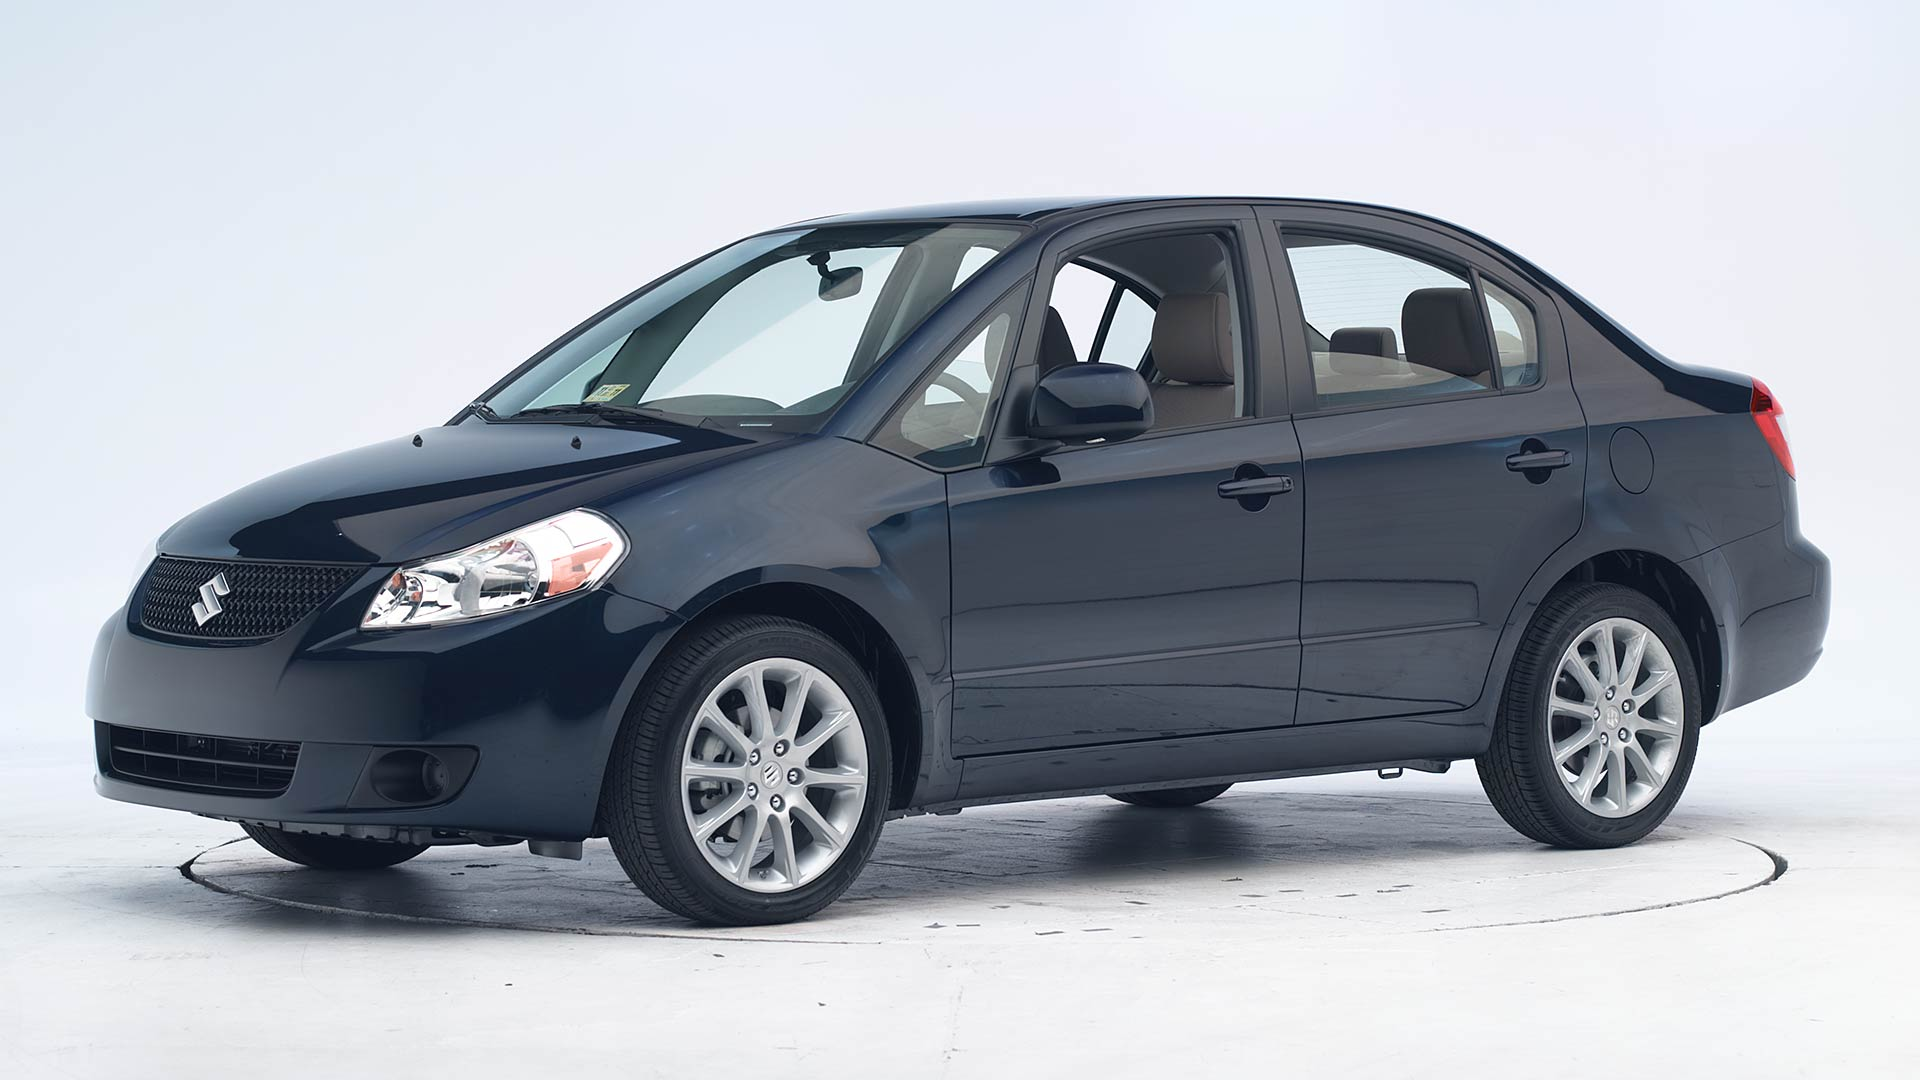 2011 Suzuki SX4 4-door sedan